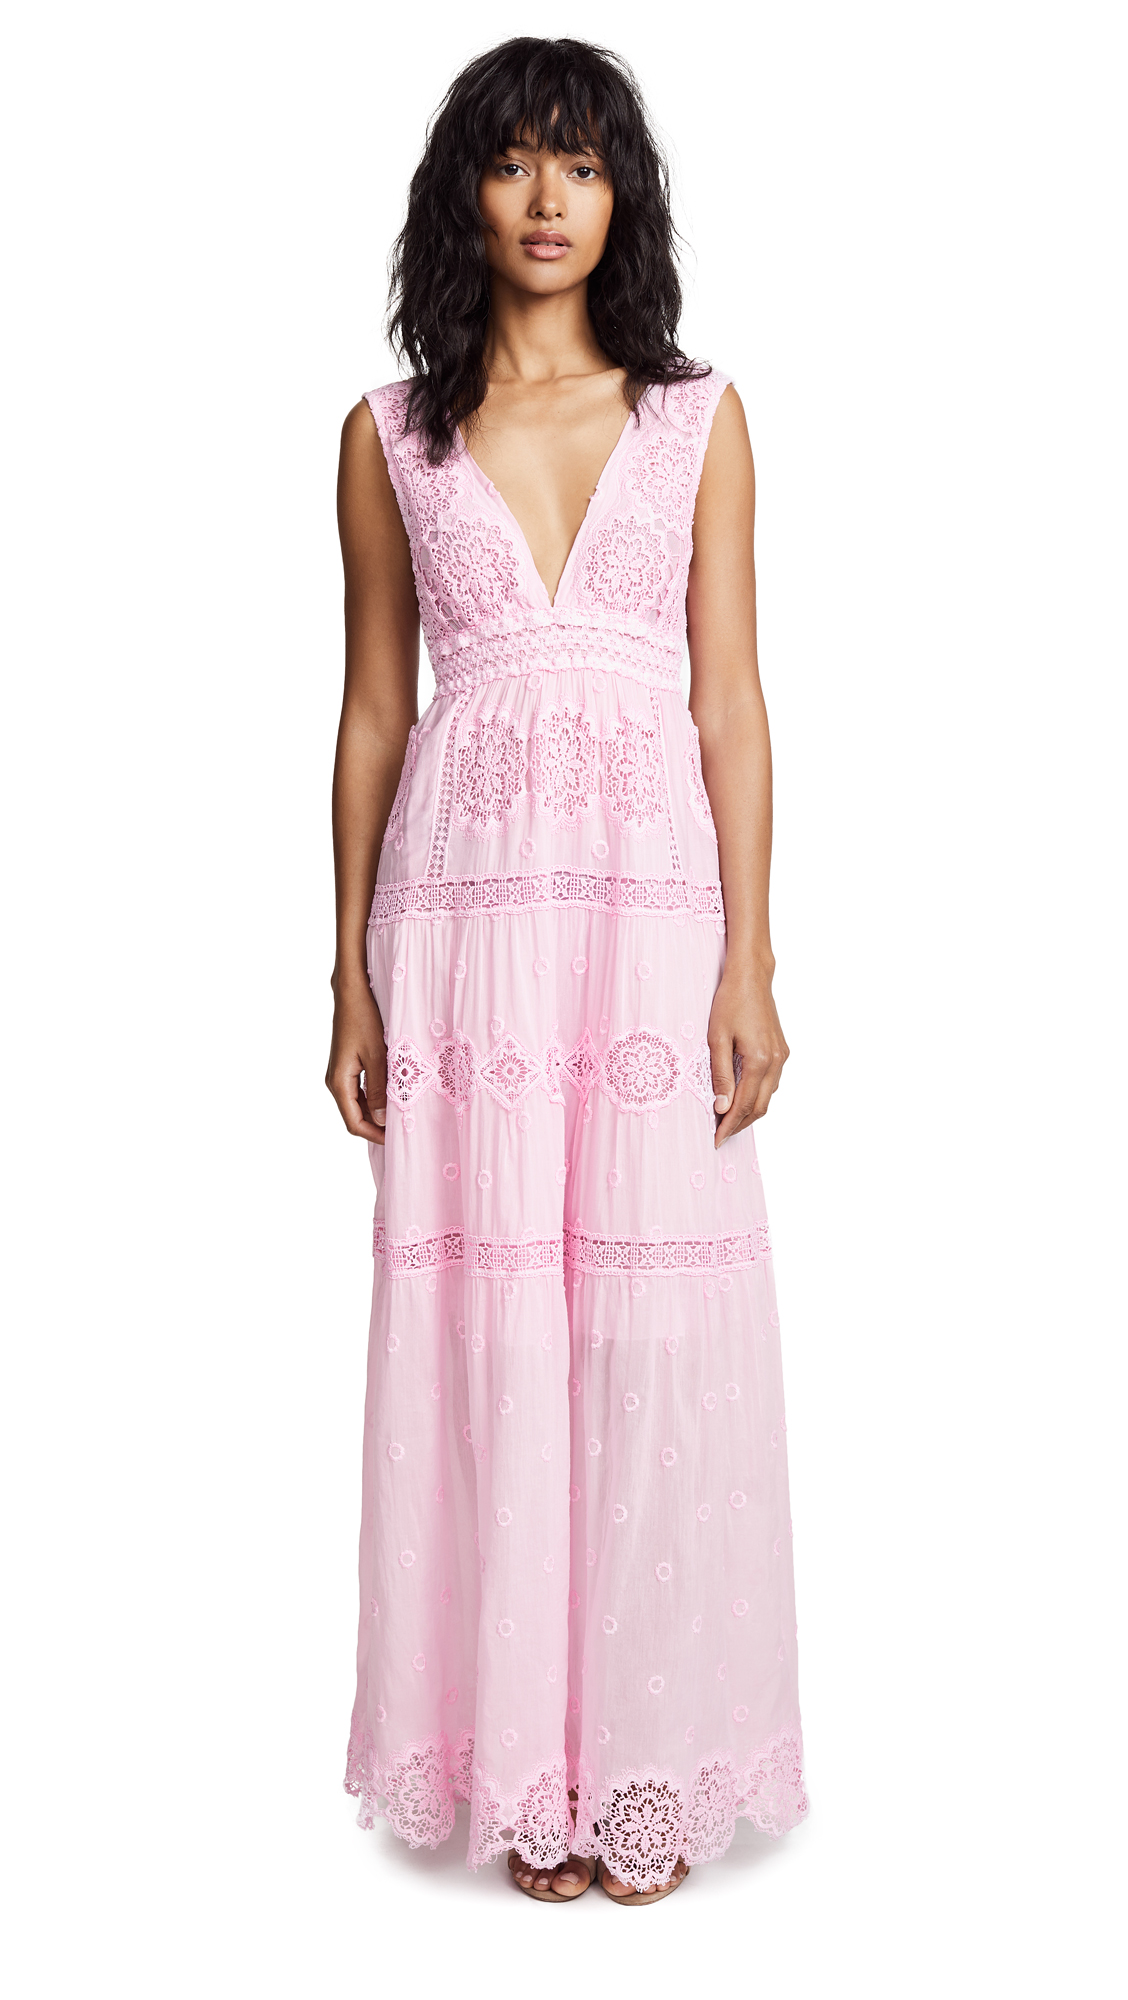 Temptation Positano Maldive Long V Neck Dress - Pink